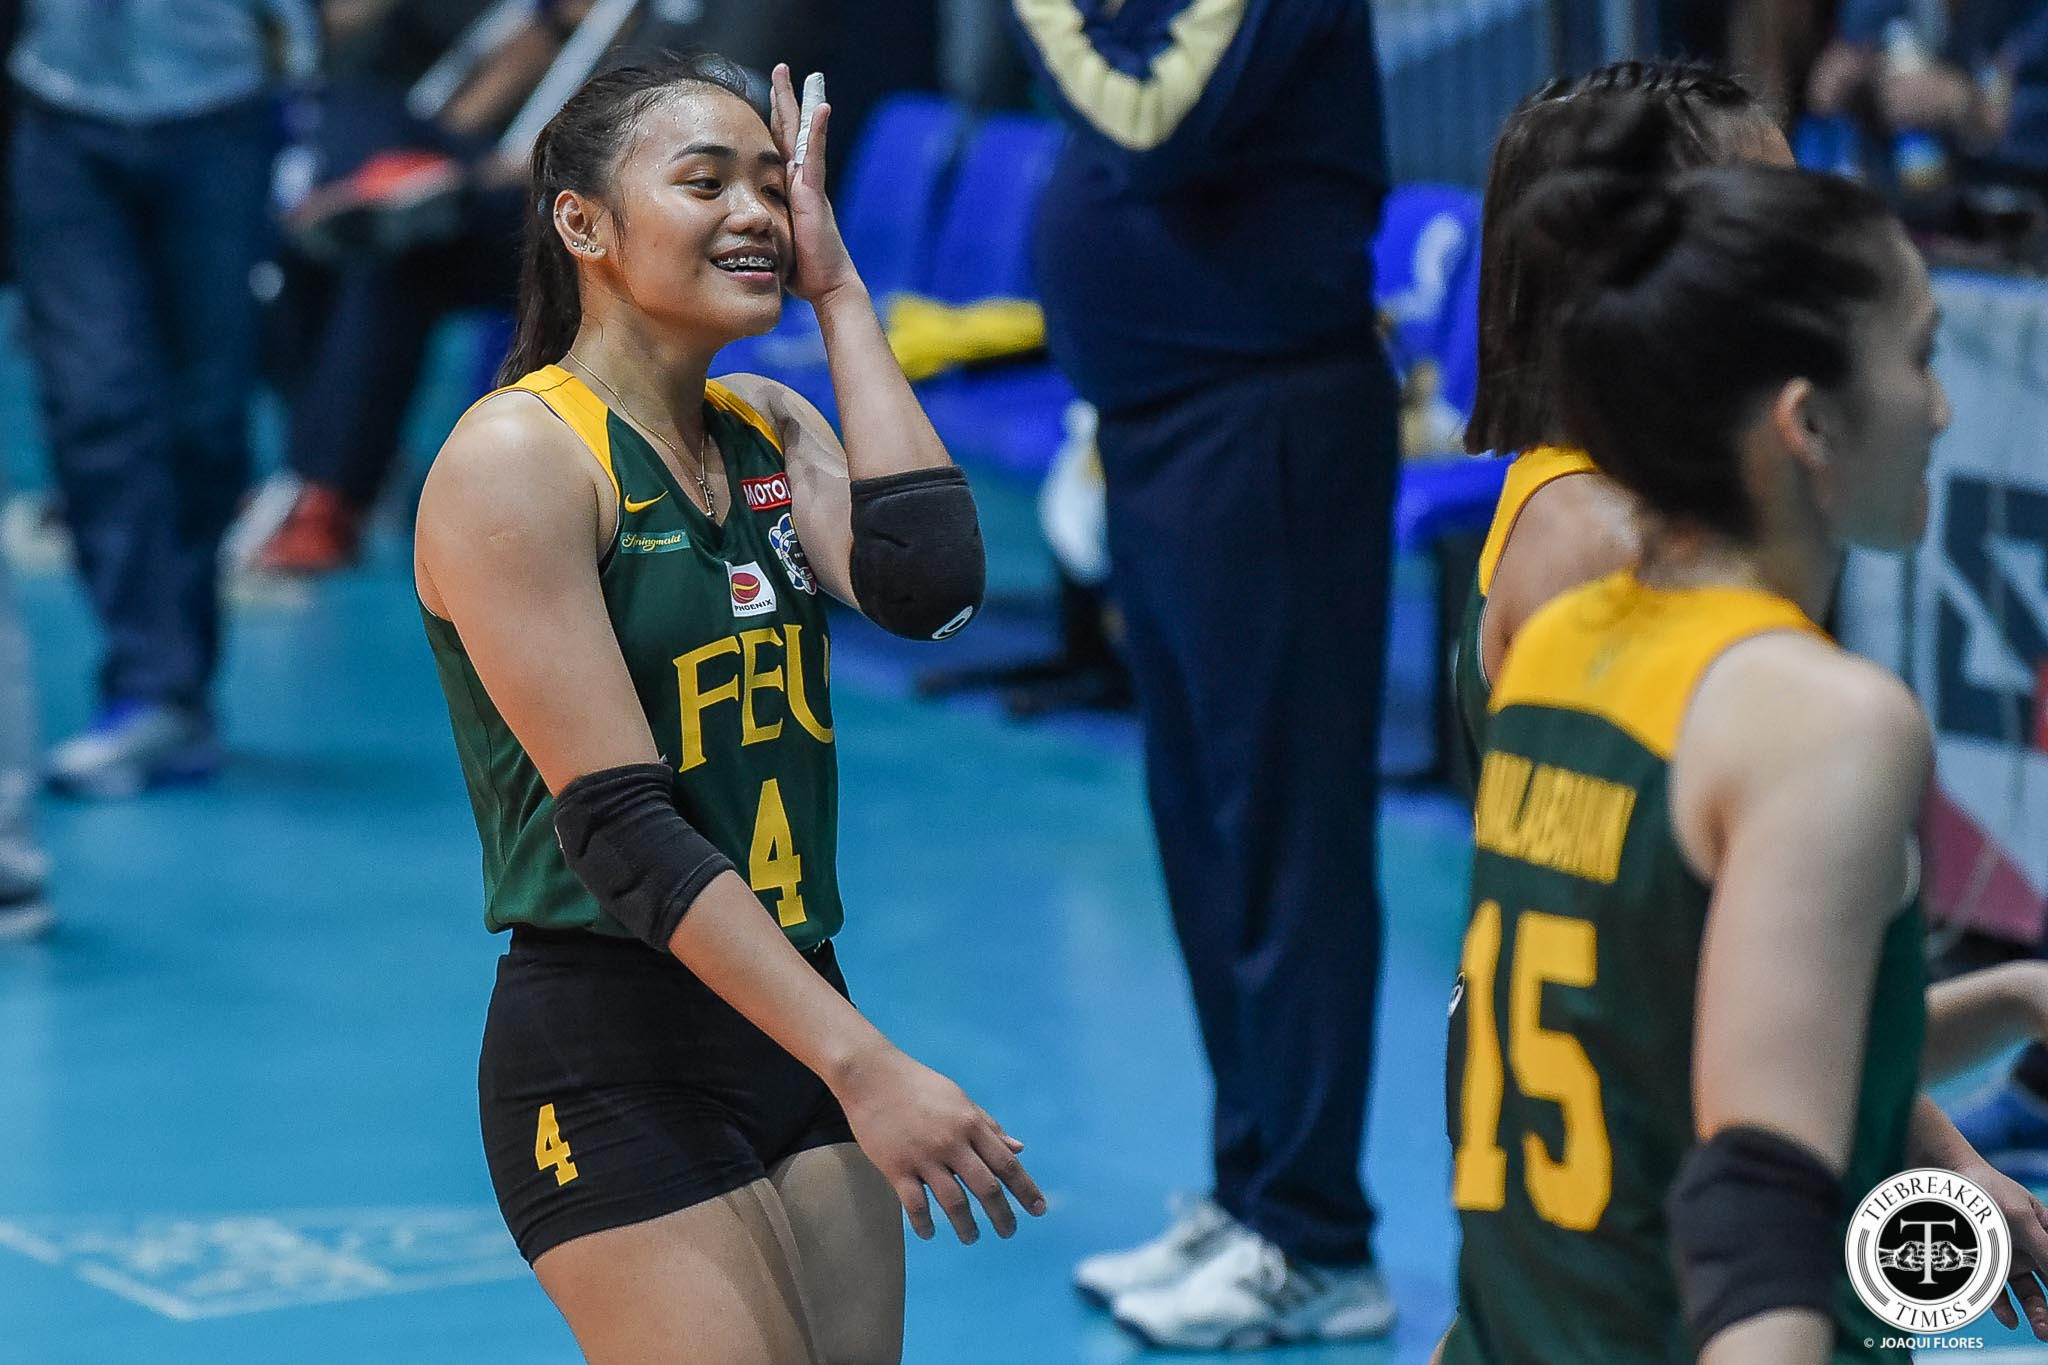 UAAP-81-Volleyball-FEU-vs.-NU-Guino-o-9650 Cayuna foregoes final year in FEU, joins Guino-o in Perlas FEU News PVL UAAP Volleyball  - philippine sports news